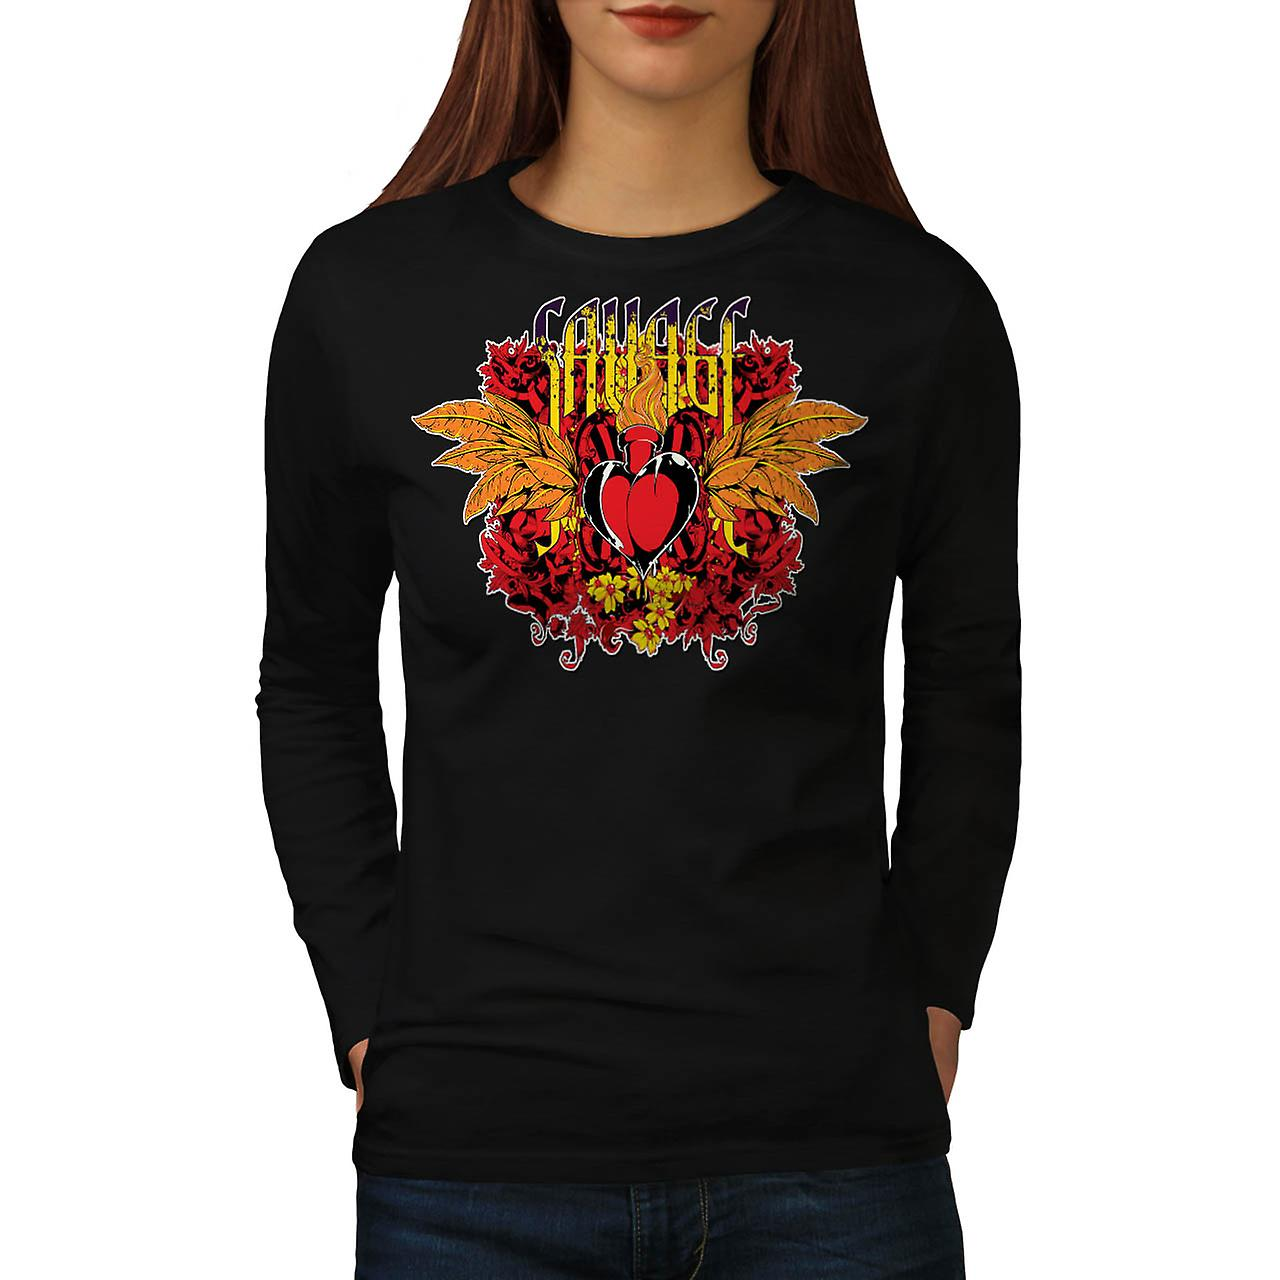 Savage Heart Cool Fashion Women Black Long Sleeve T-shirt | Wellcoda